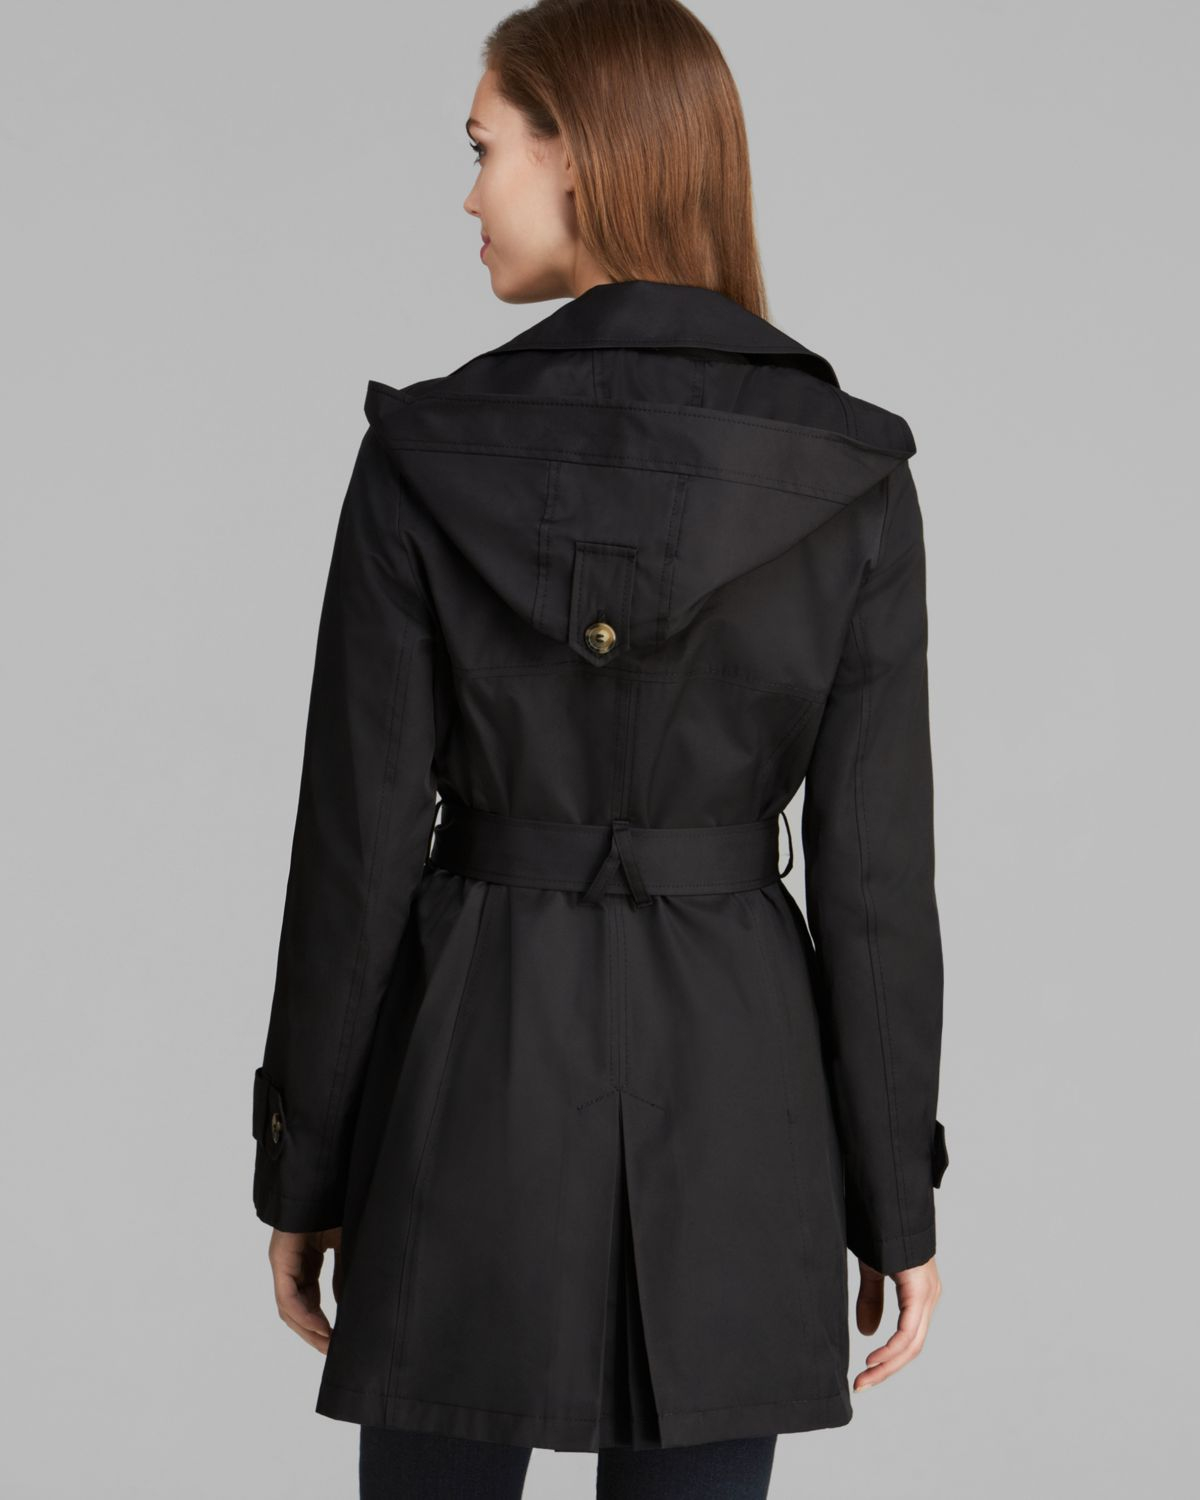 lyst dkny abby hooded trench coat in black